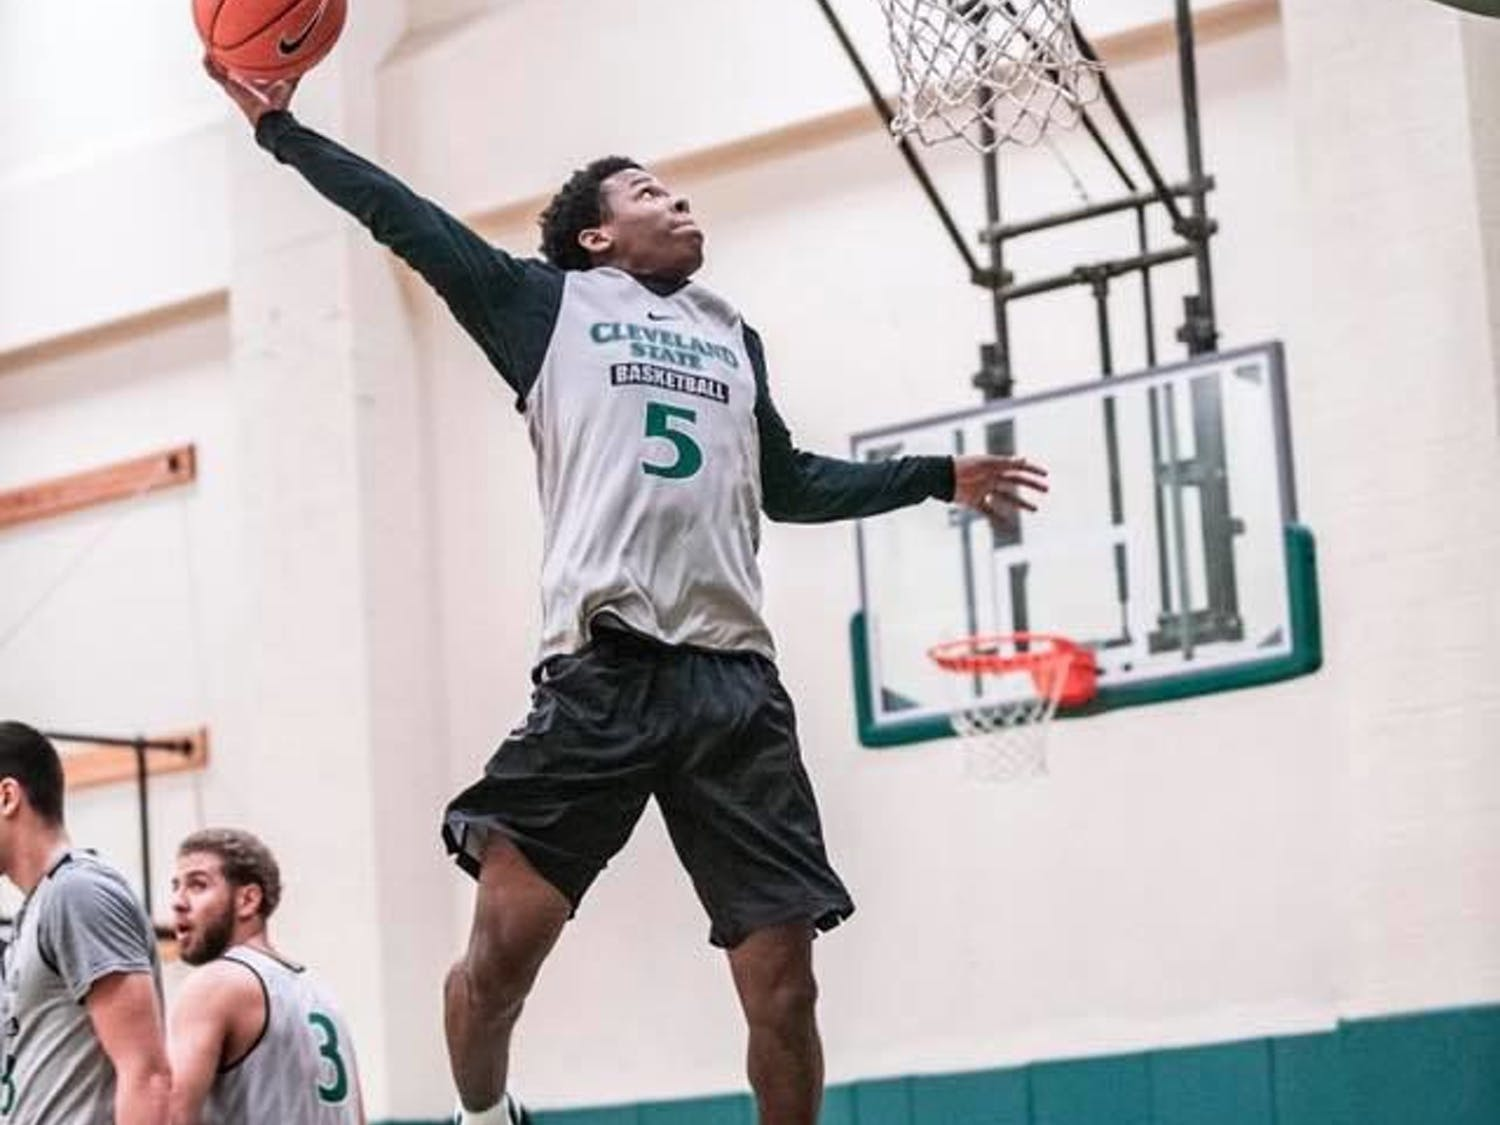 Undergraduate transfer Tyree Appleby averaged 17.2 points and 5.6 assists last year for the Cleveland State Vikings.